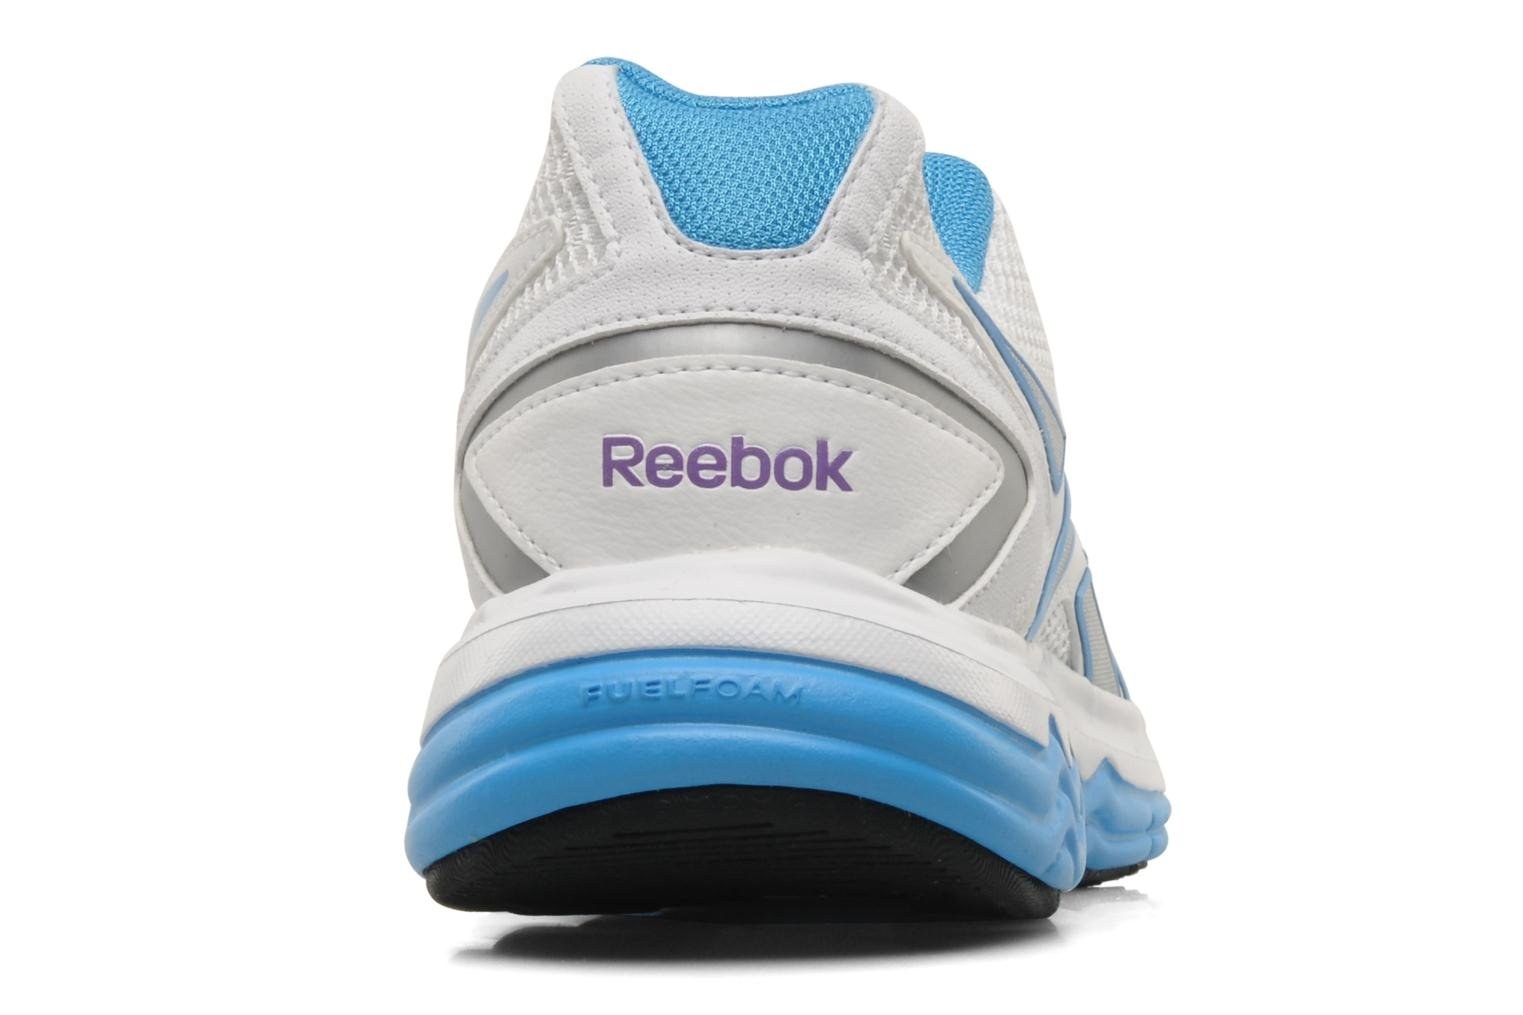 Reebok Fuel Extreme White-Frenchy Blue-Major Purple